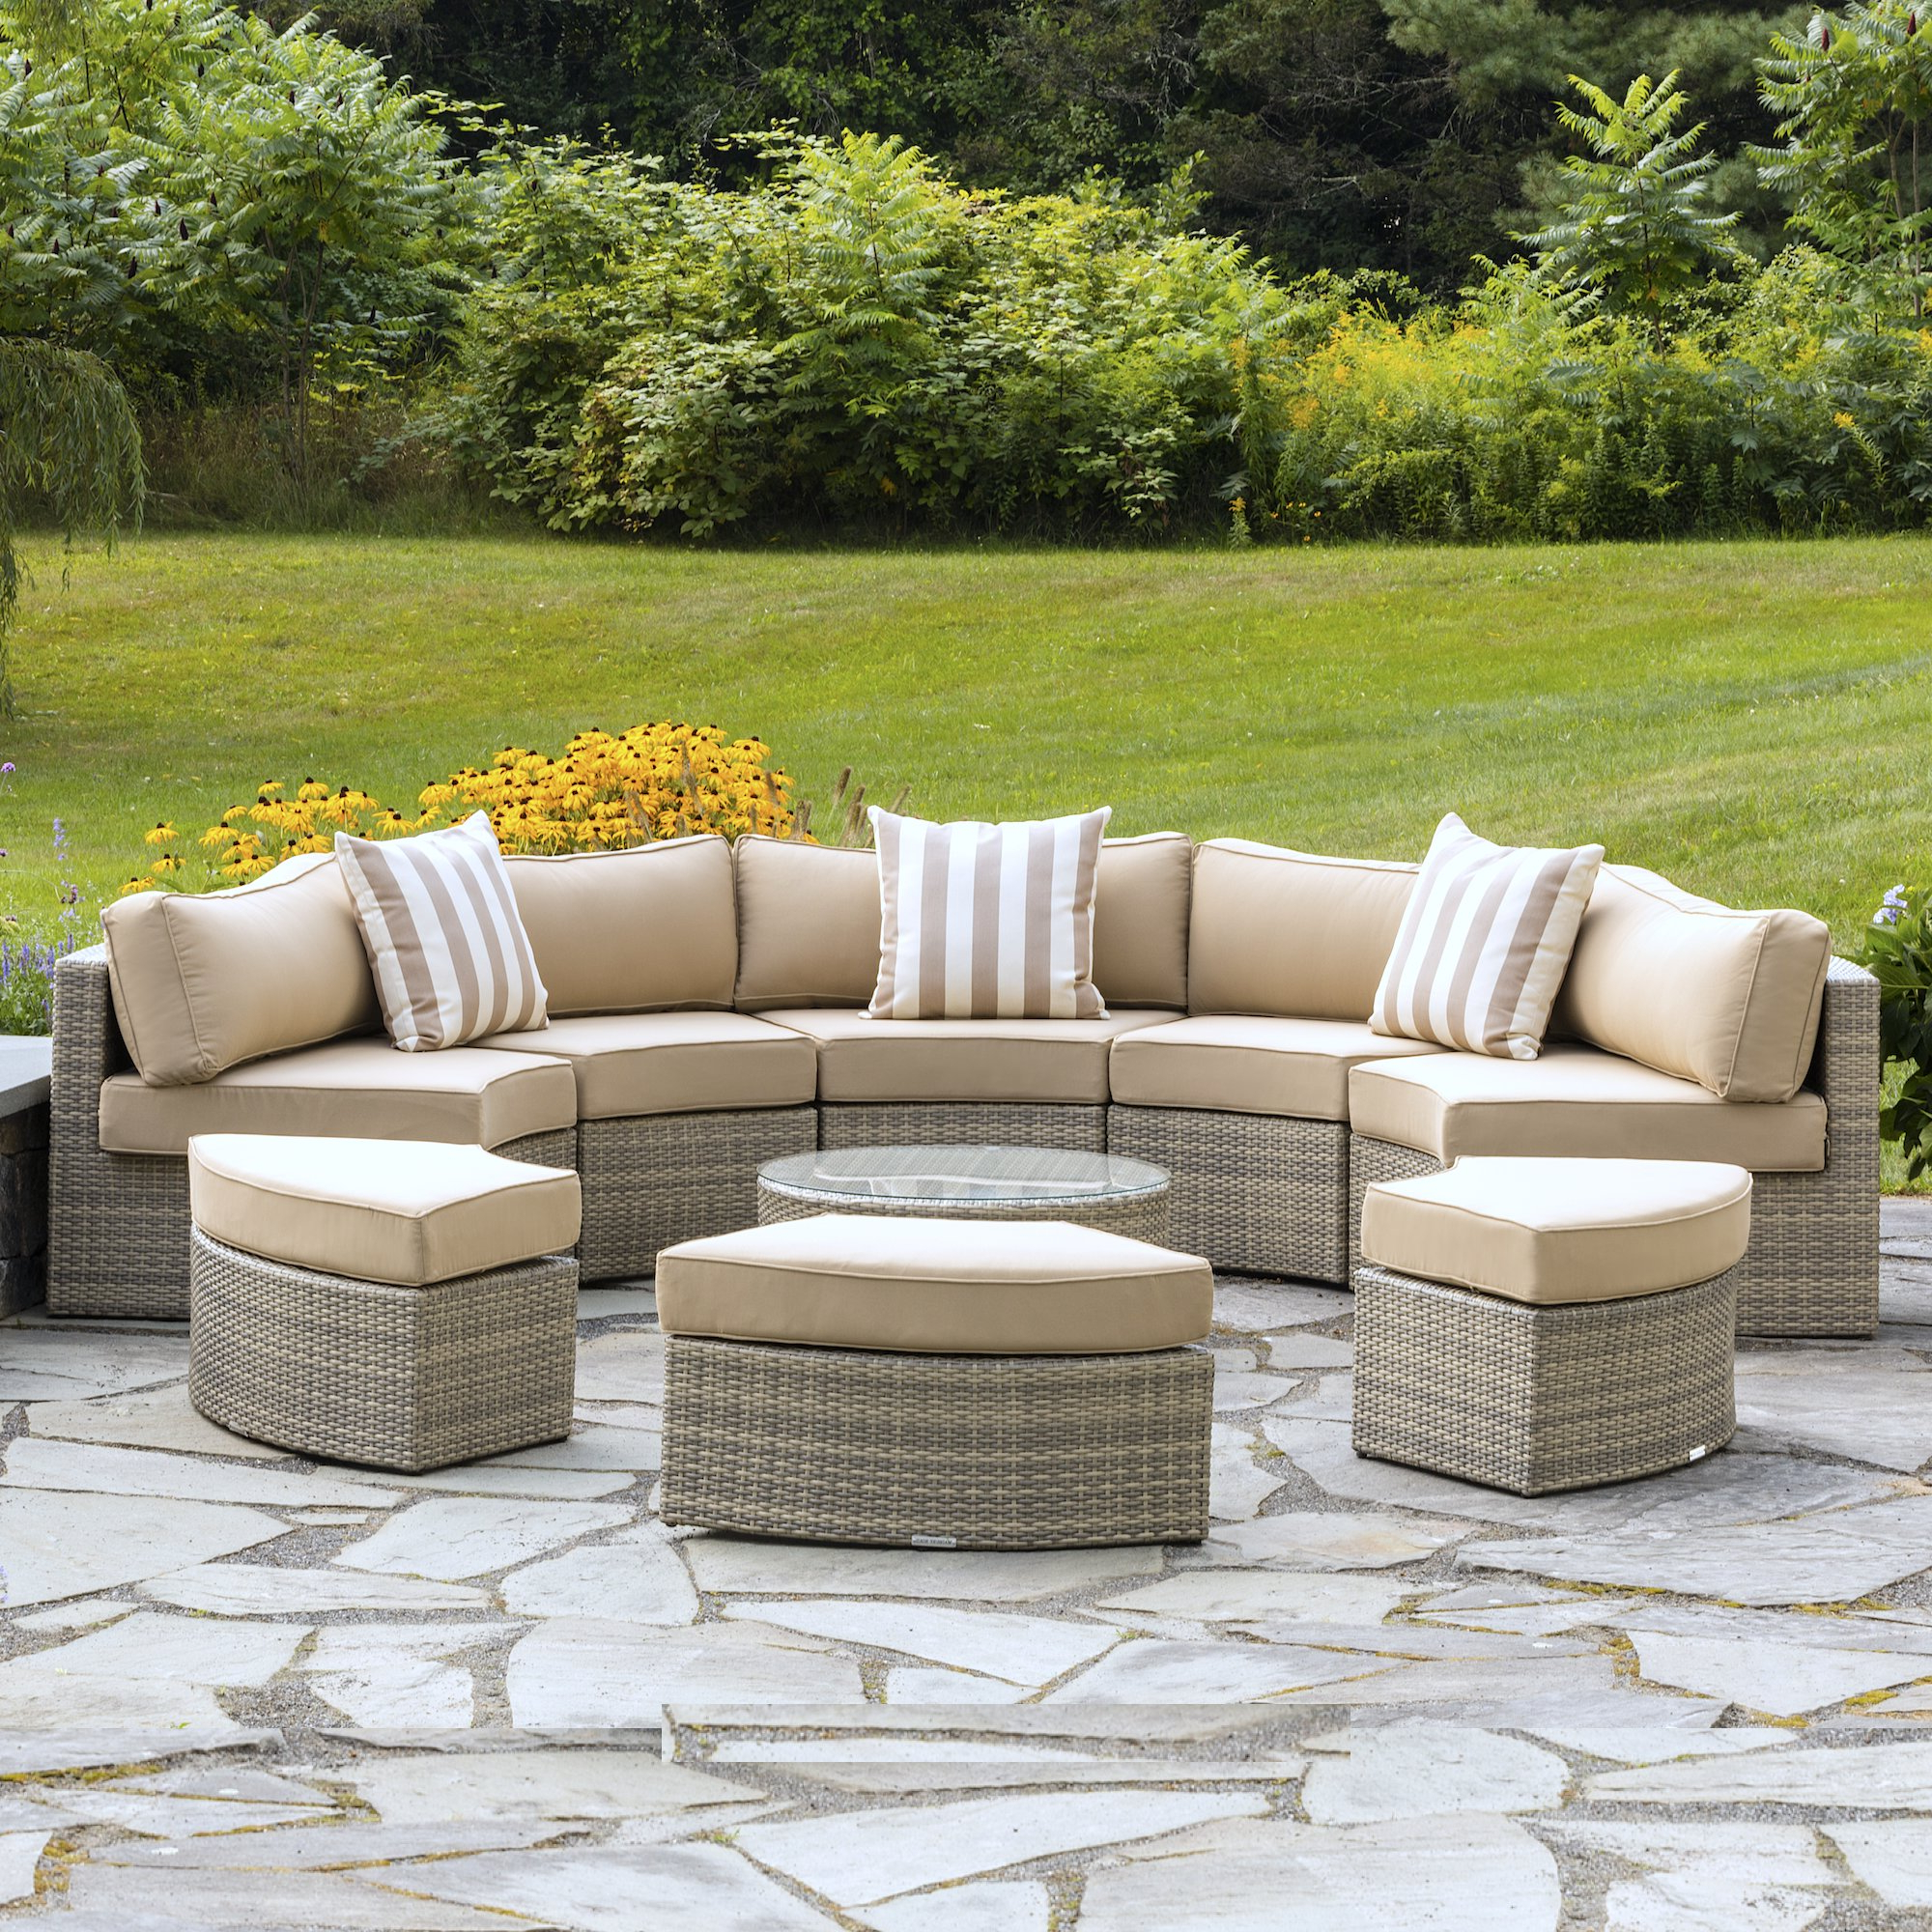 Wrobel Patio Sectionals With Cushion Inside Latest Santorini 9 Piece Sectional Seating Group With Cushions (View 18 of 20)